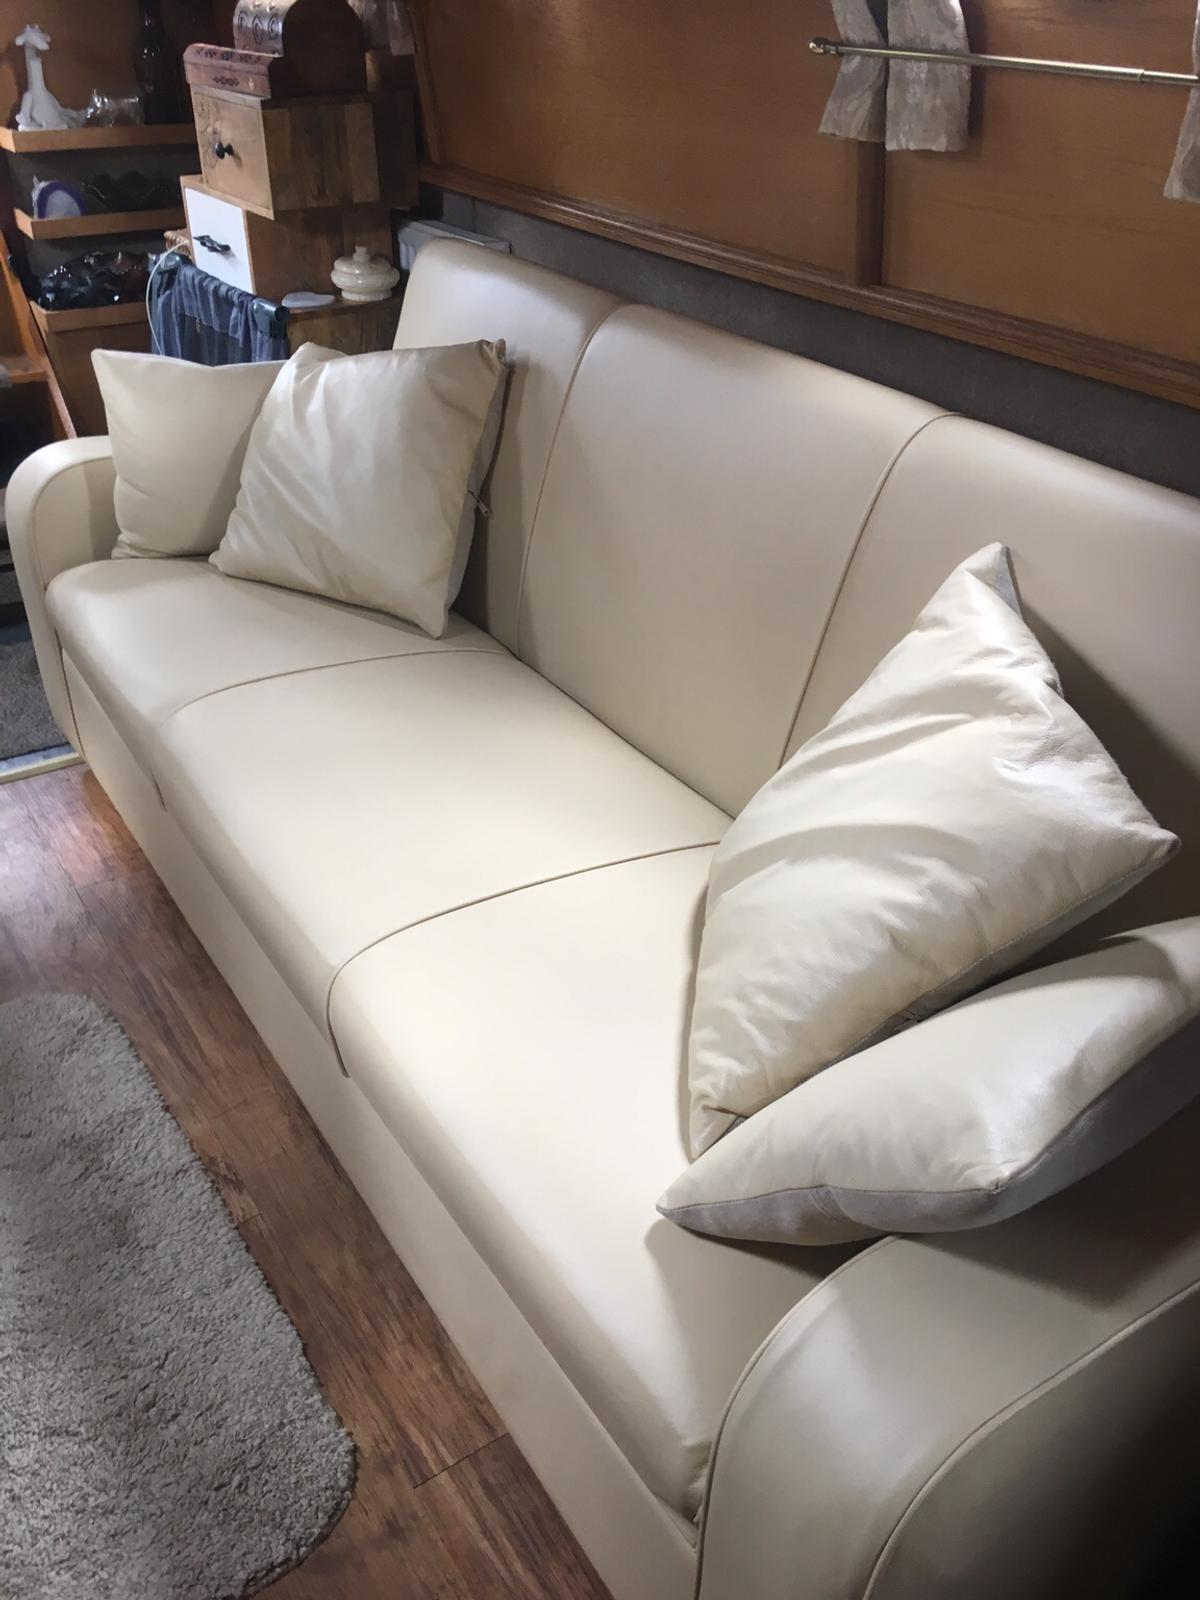 Awesome Sofa Bed For Narrow Boat Price Reduction In Ws13 Lichfield Evergreenethics Interior Chair Design Evergreenethicsorg